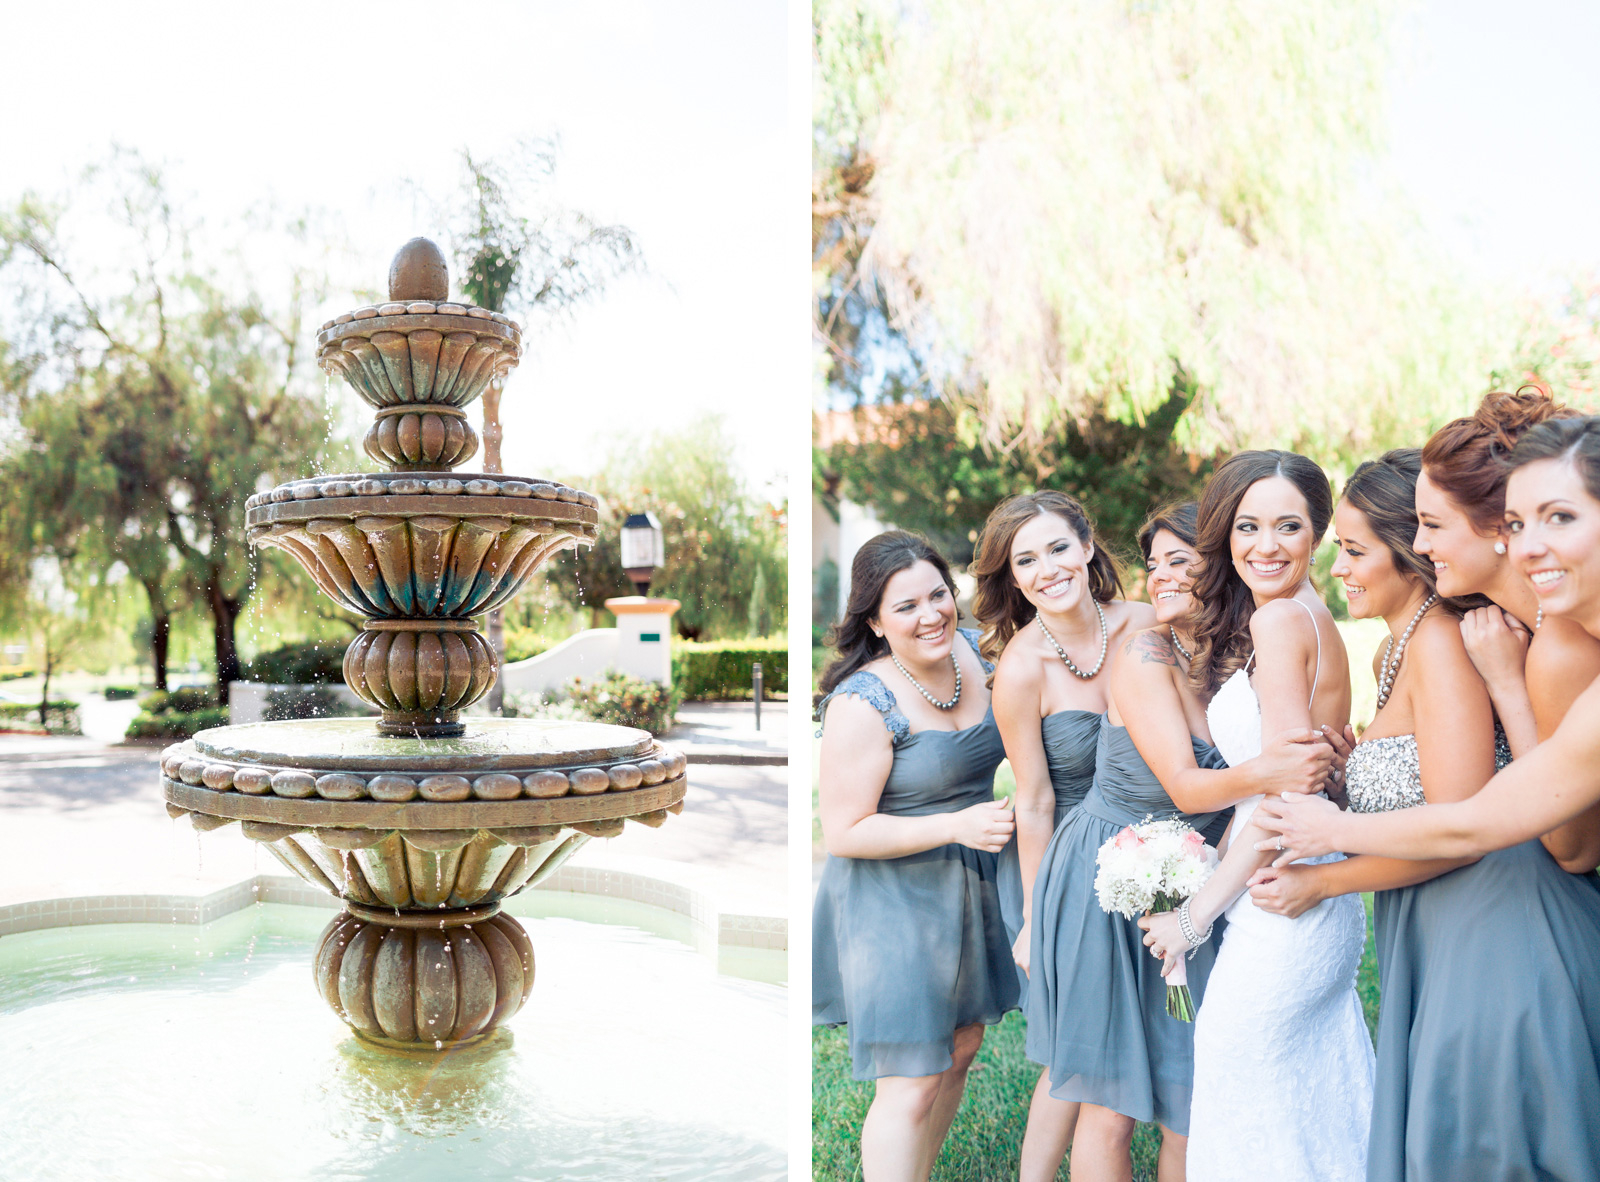 Laguna-Beach-Wedding-Photographer_03.jpg